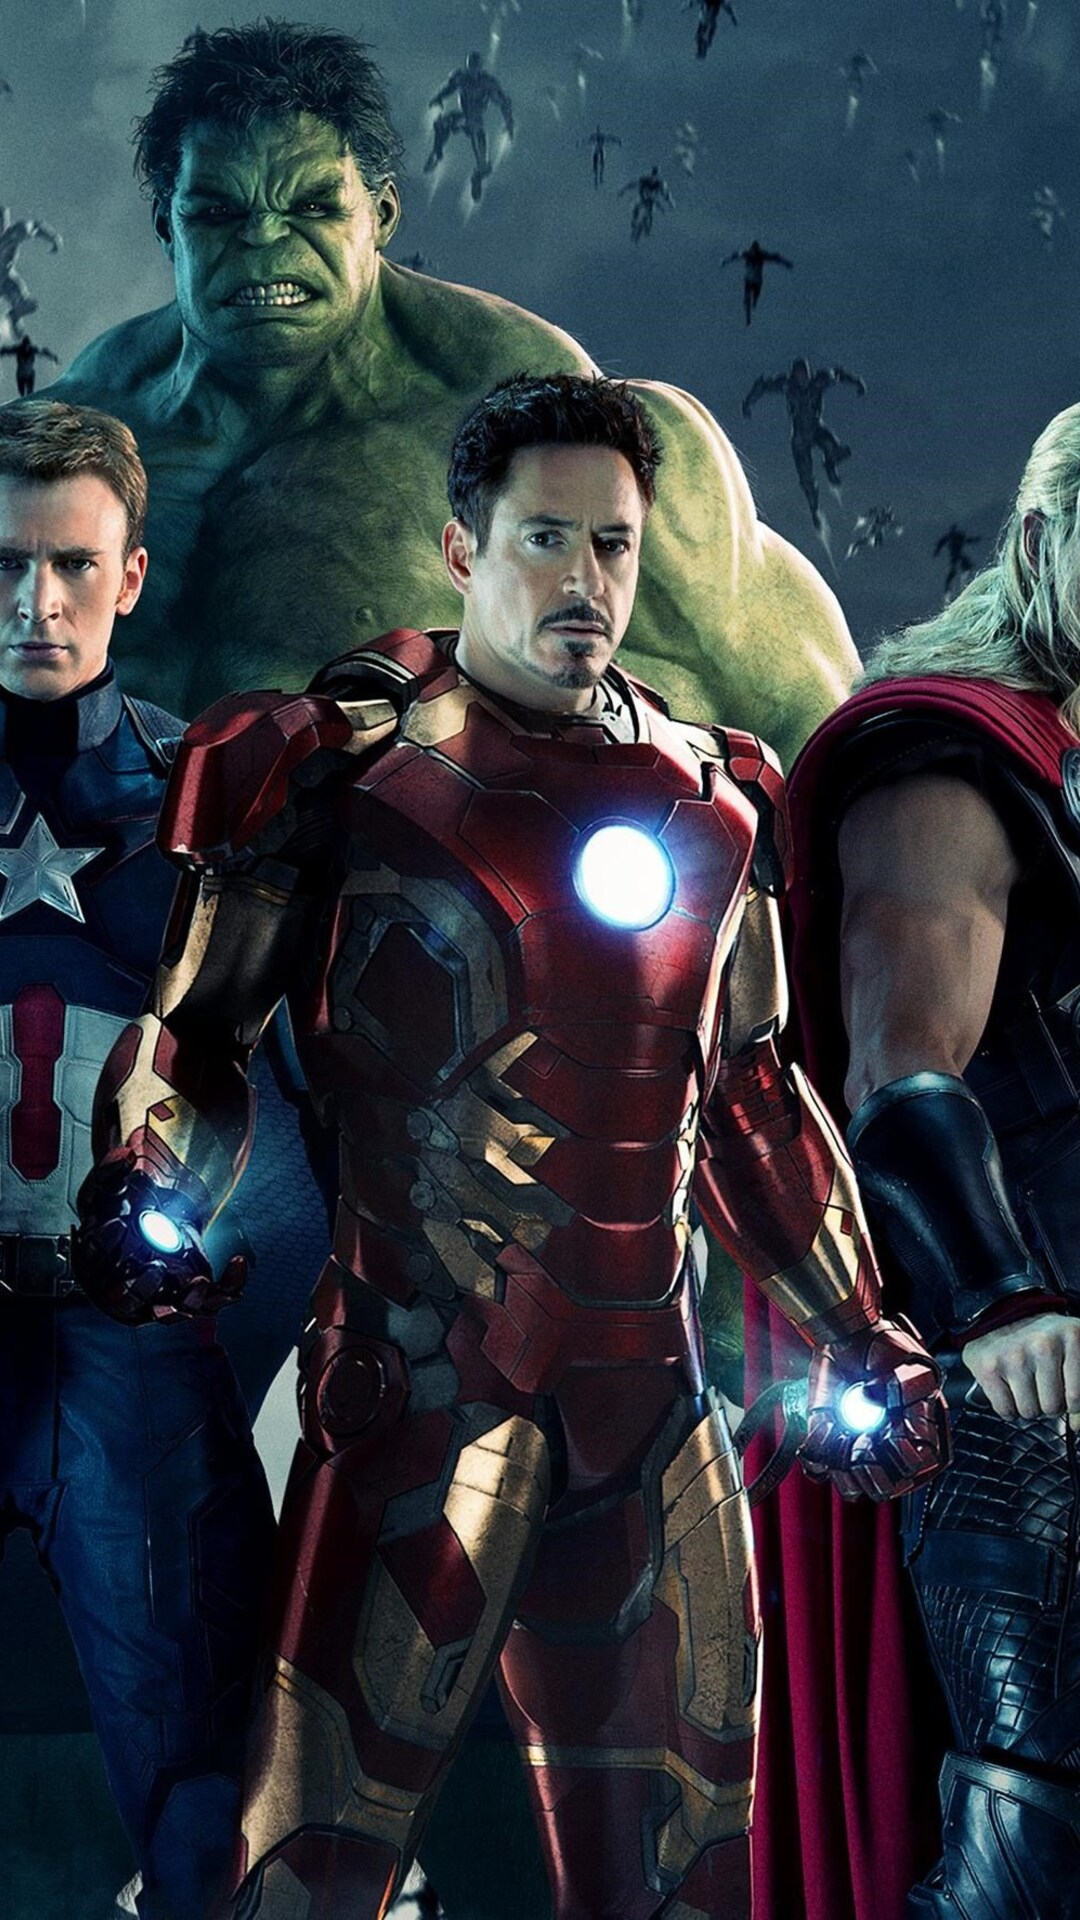 Watch New Scenes from Avengers: Age of Ultron (2015)